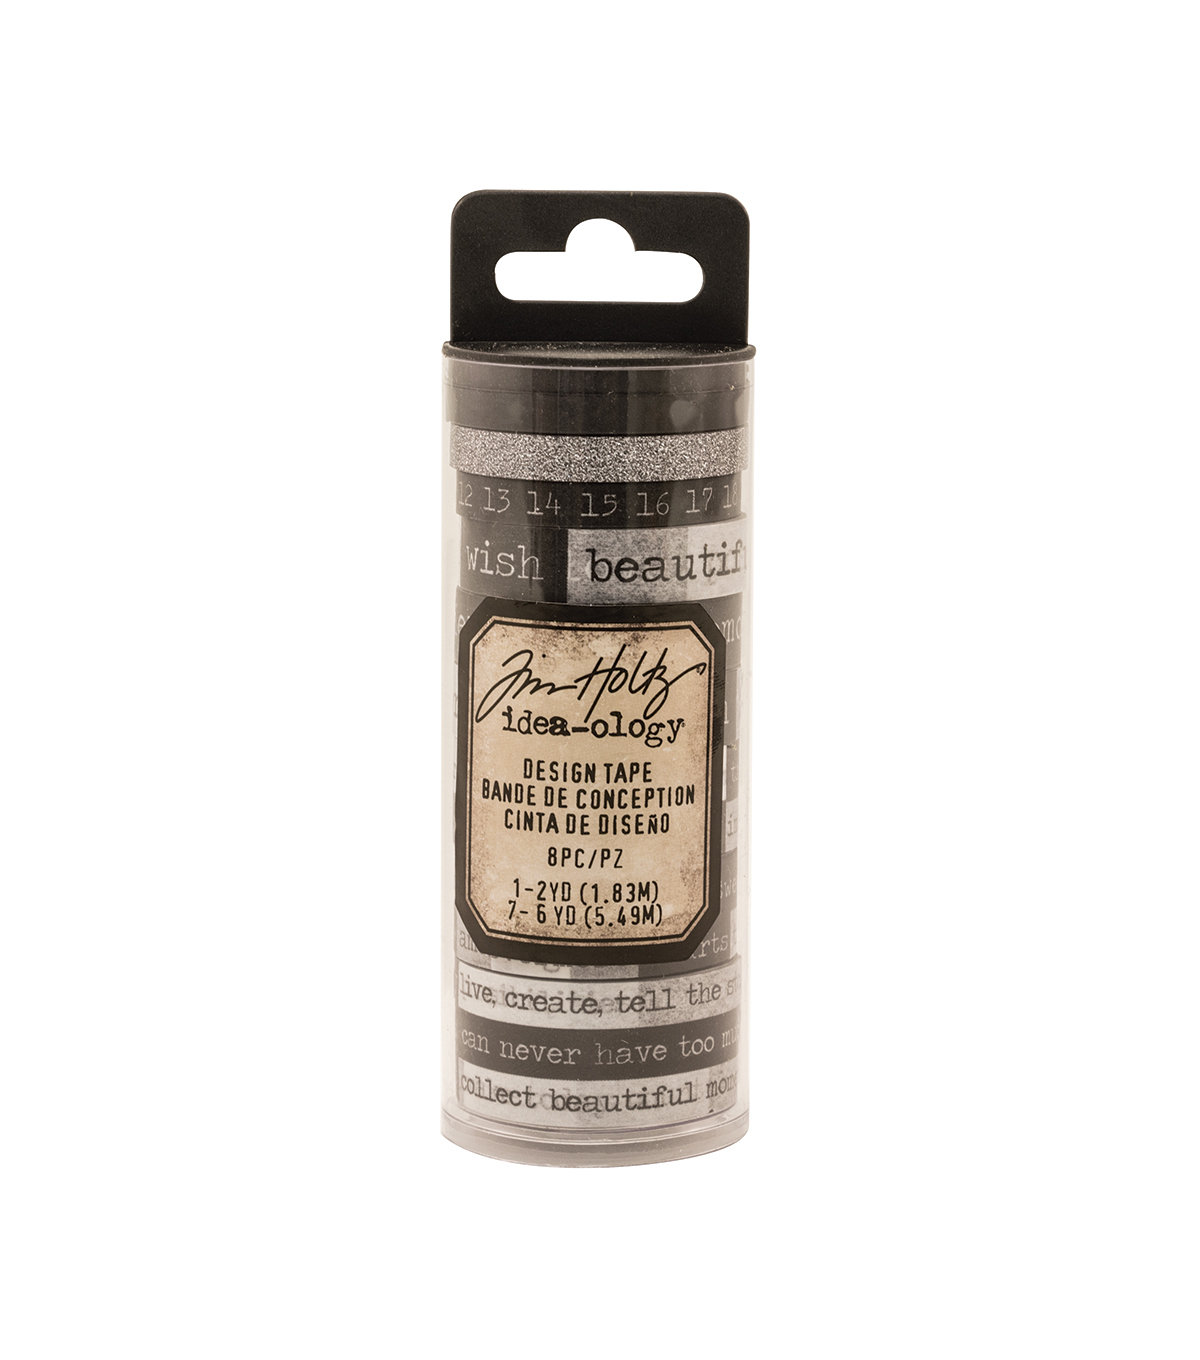 Tim Holtz Idea-ology Pack of 8 Chatter Design Tape